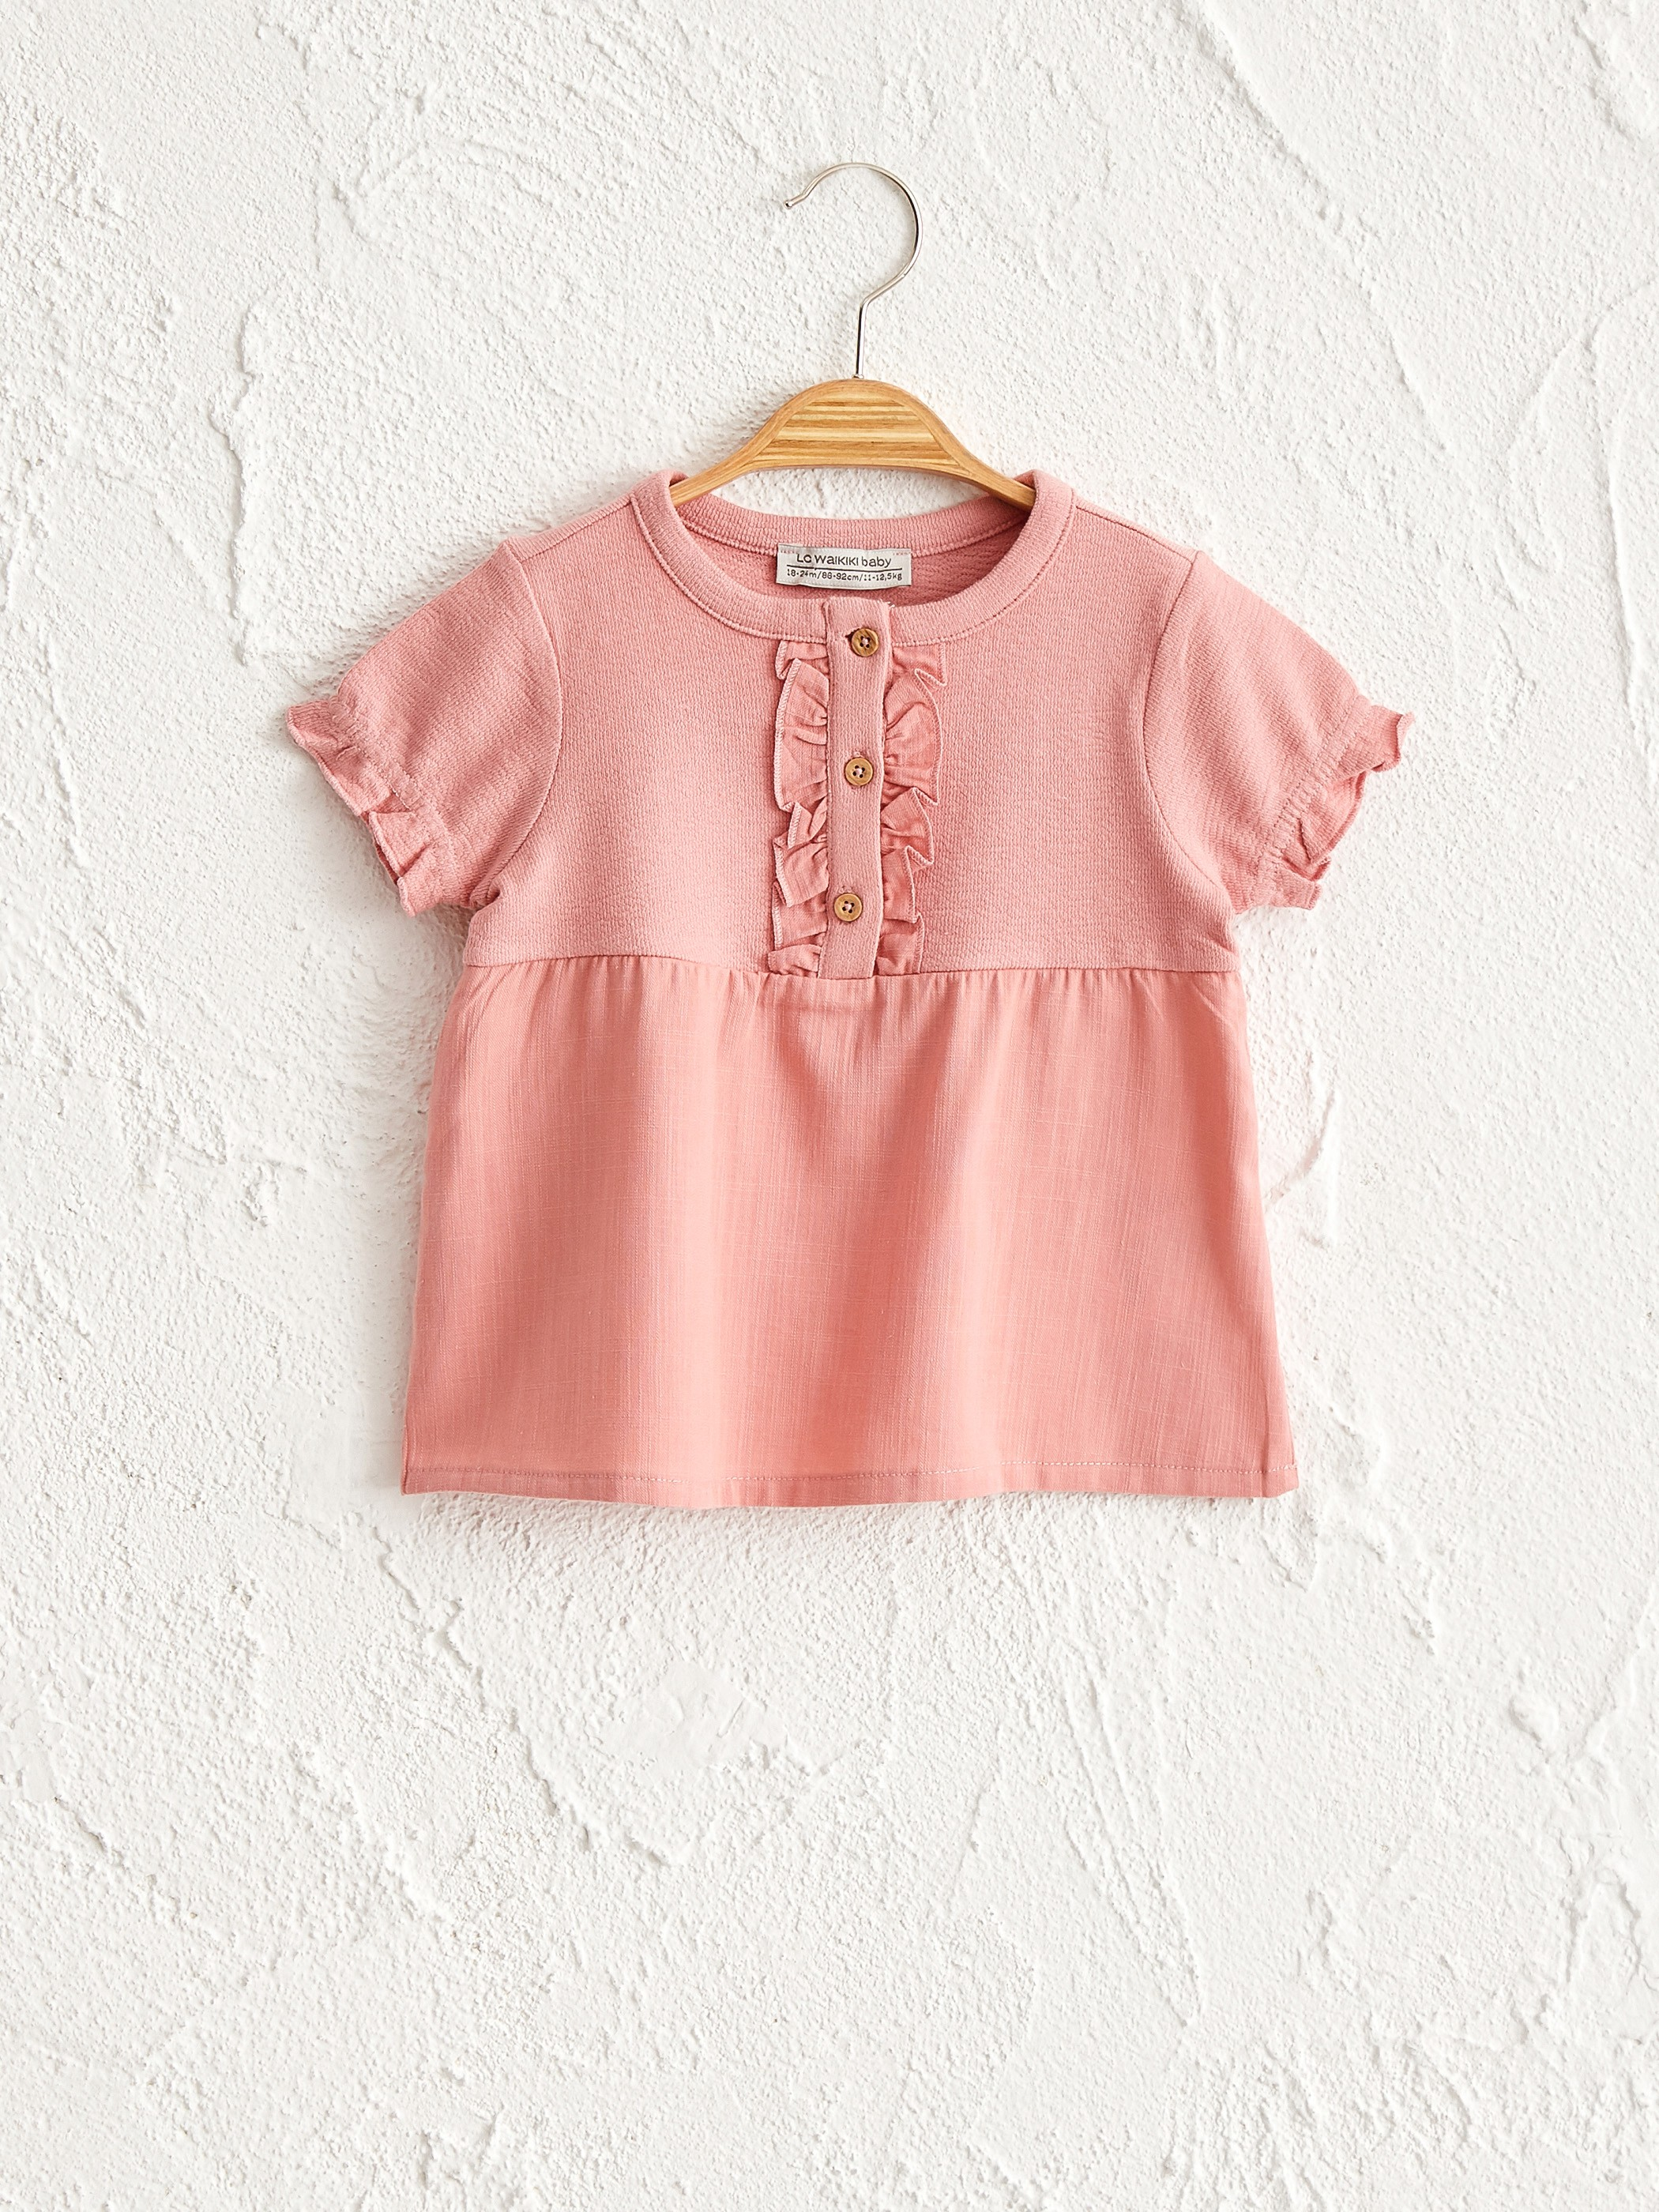 PINK - Baby Girl's T-Shirt - 0SS549Z1